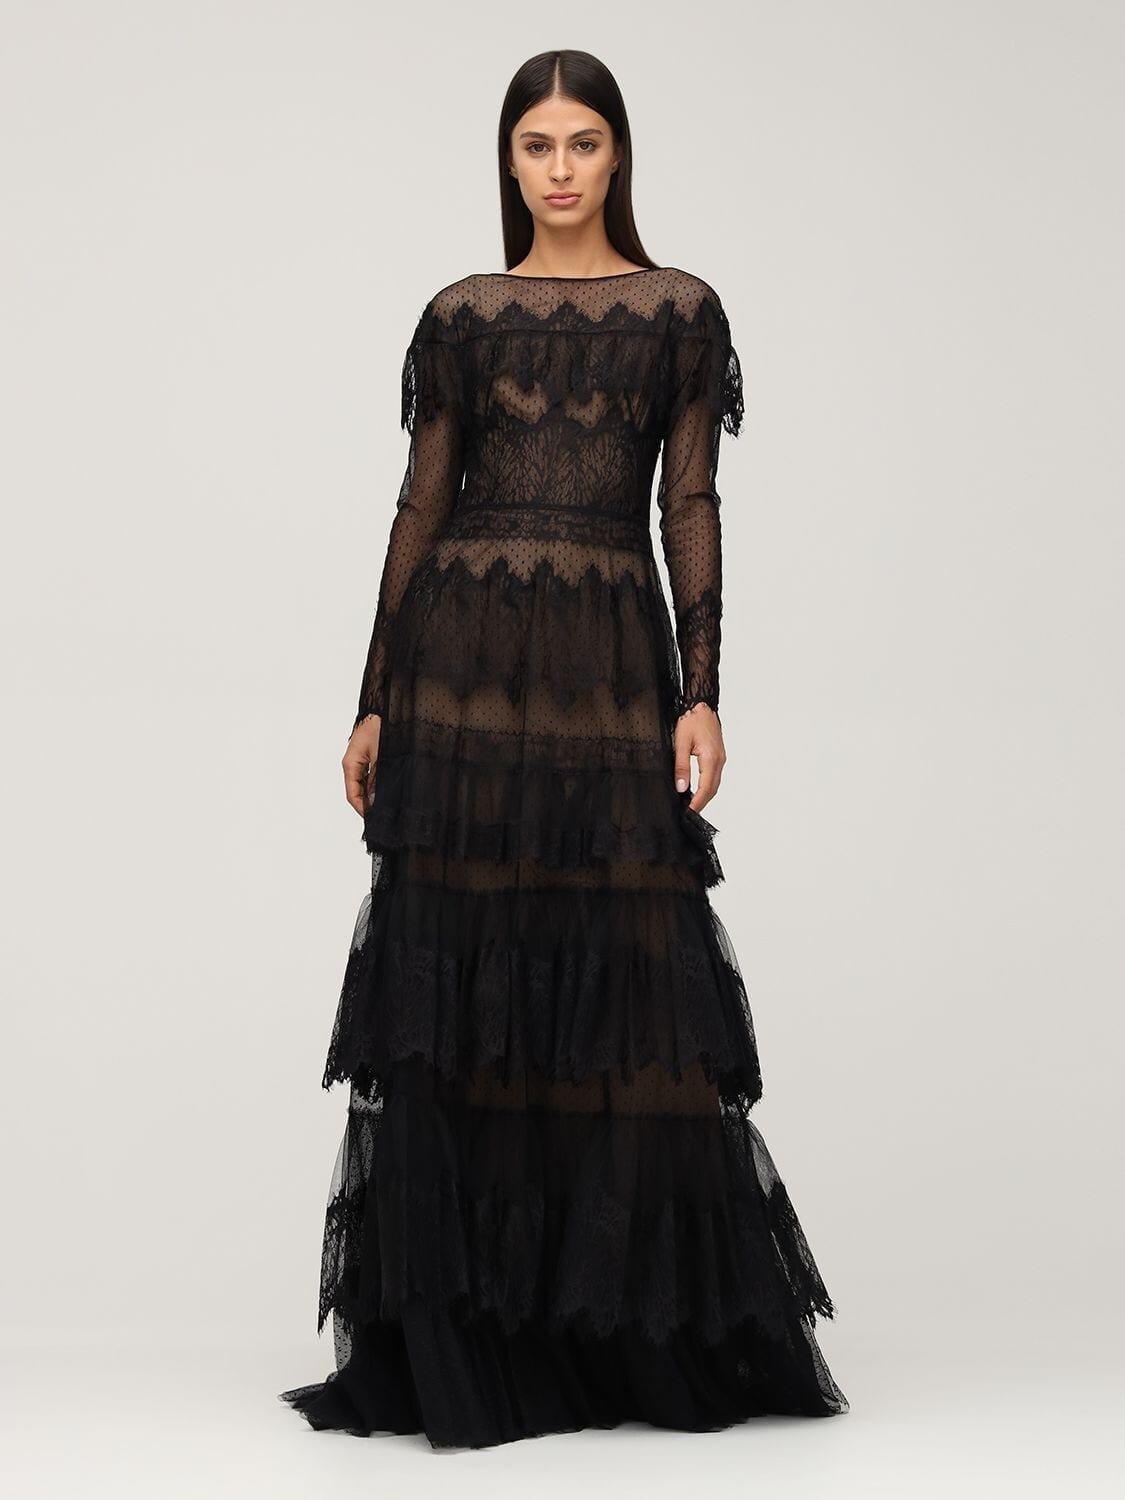 ZUHAIR MURAD Tiered Sheer Lace Long Dress